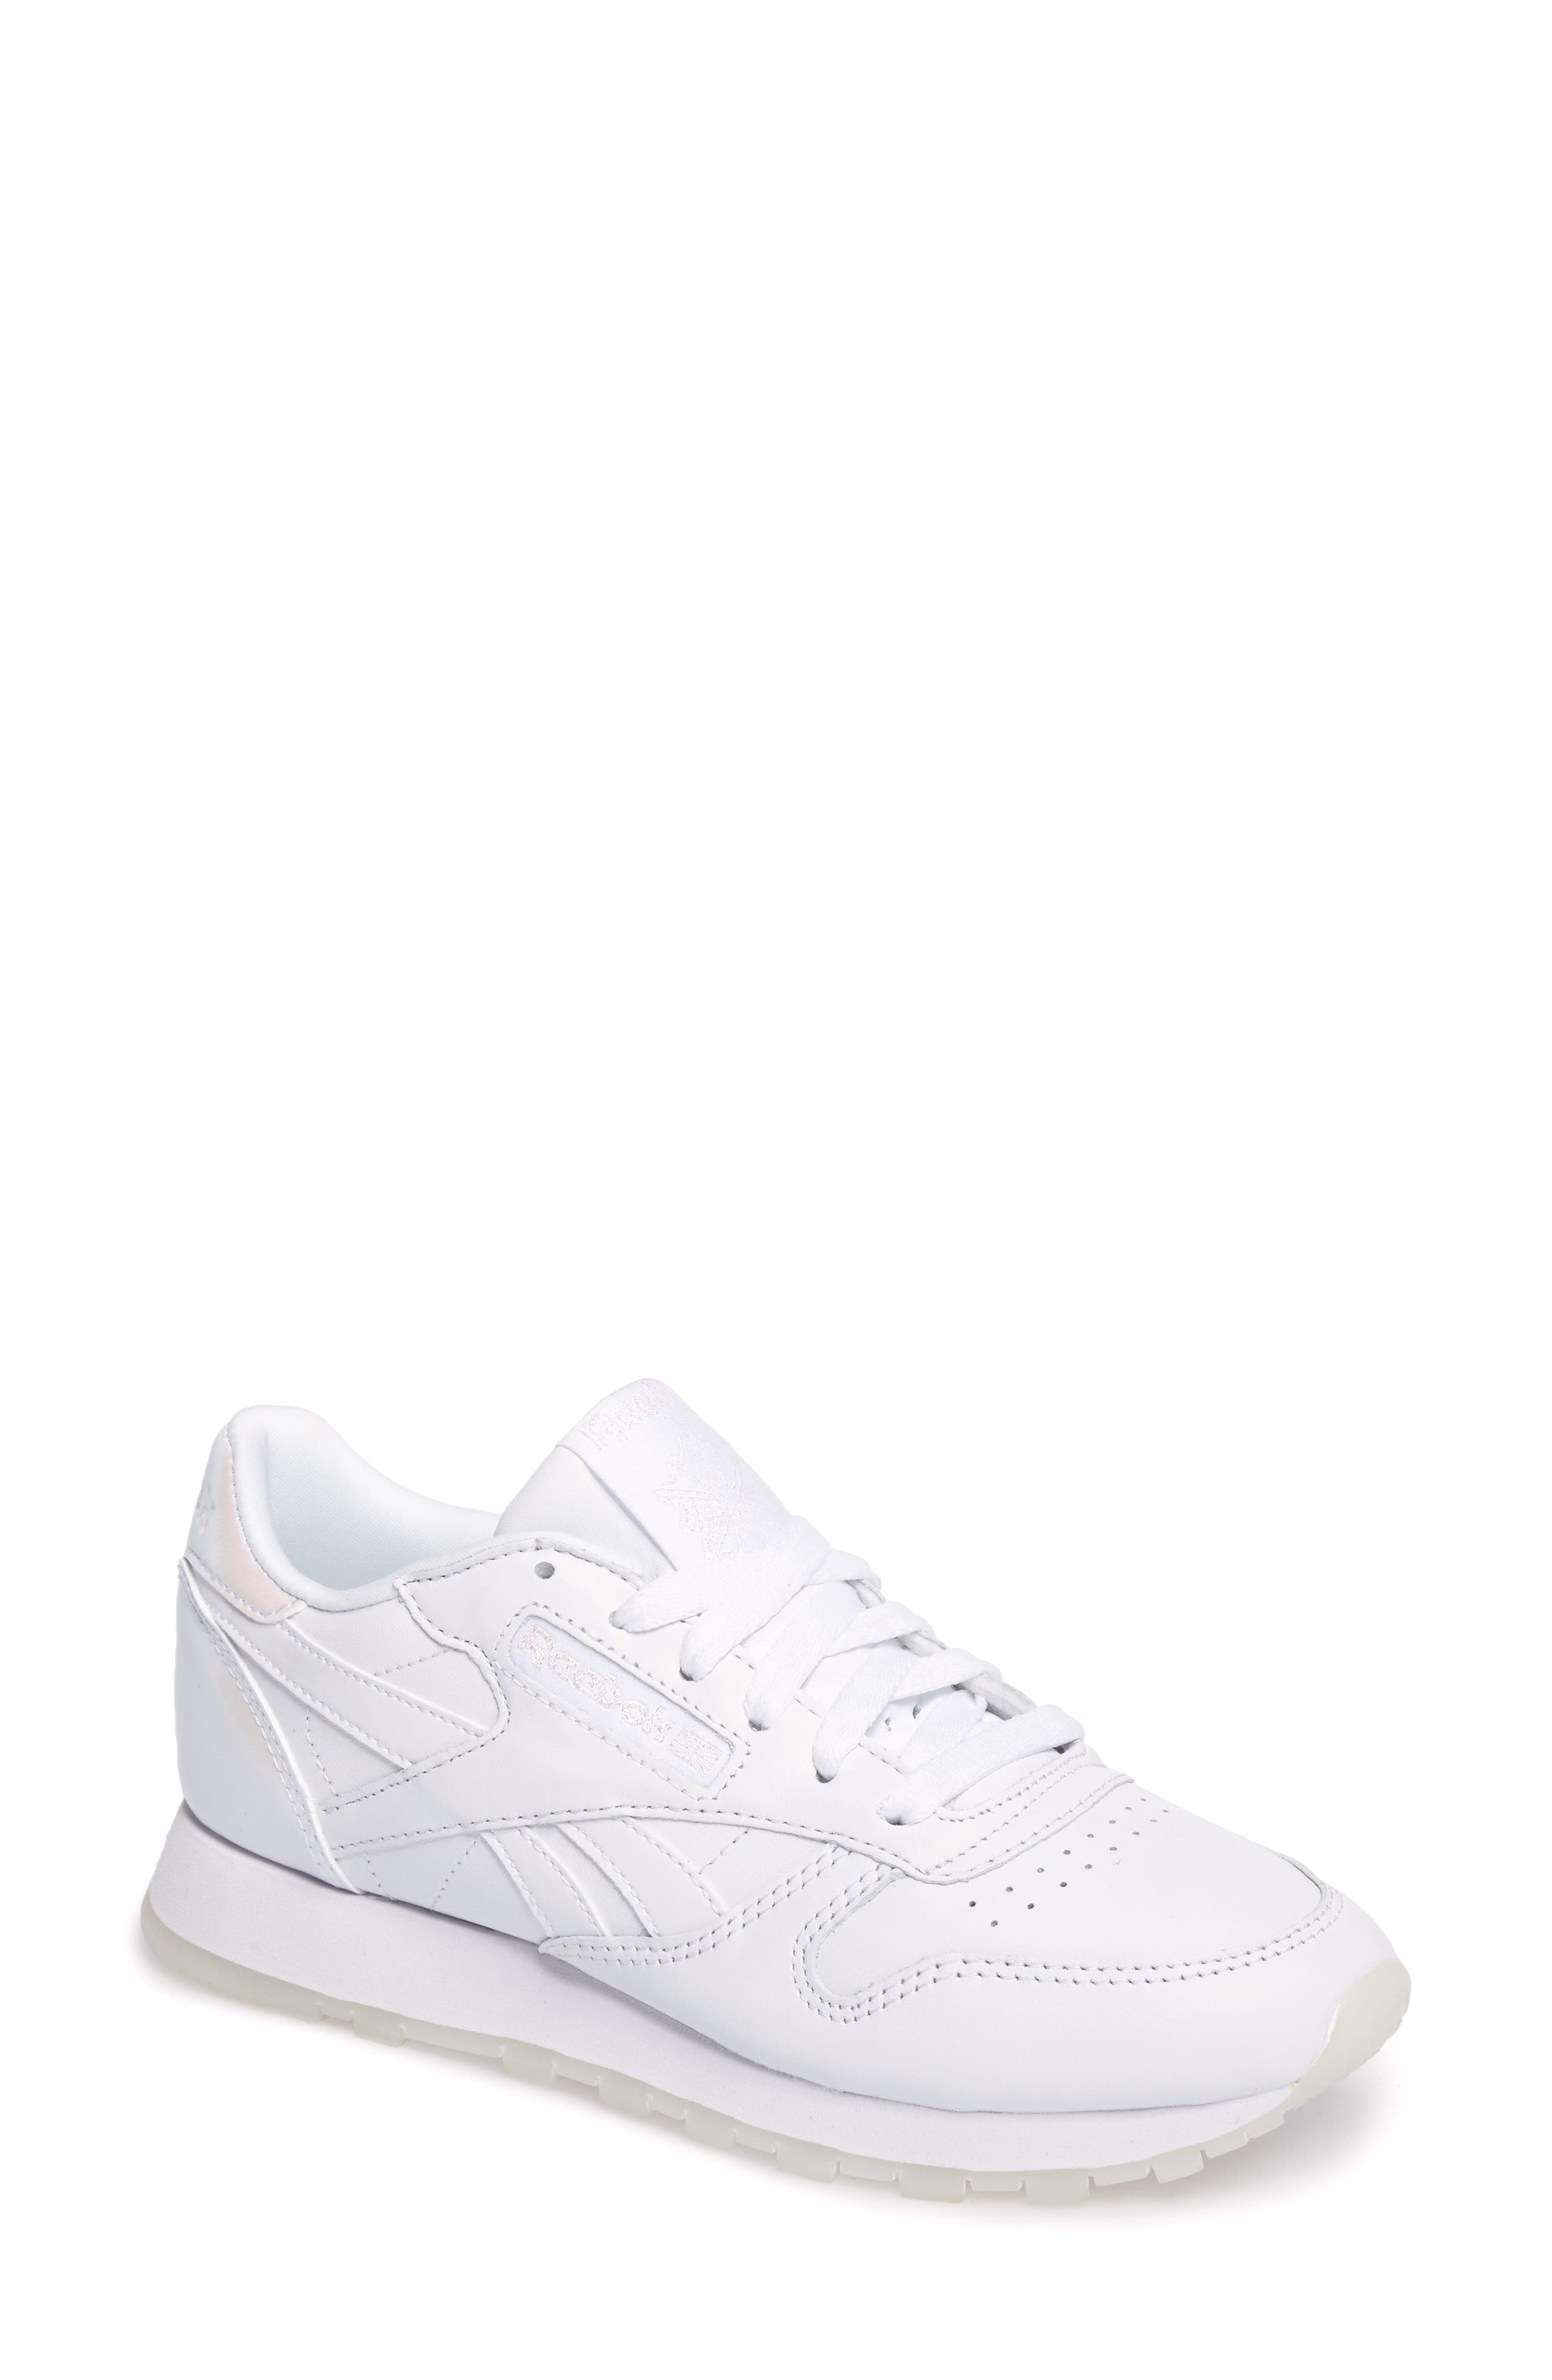 Classic Leather Sneaker,                             Main thumbnail 1, color,                             White/ White/ Ice Pearl